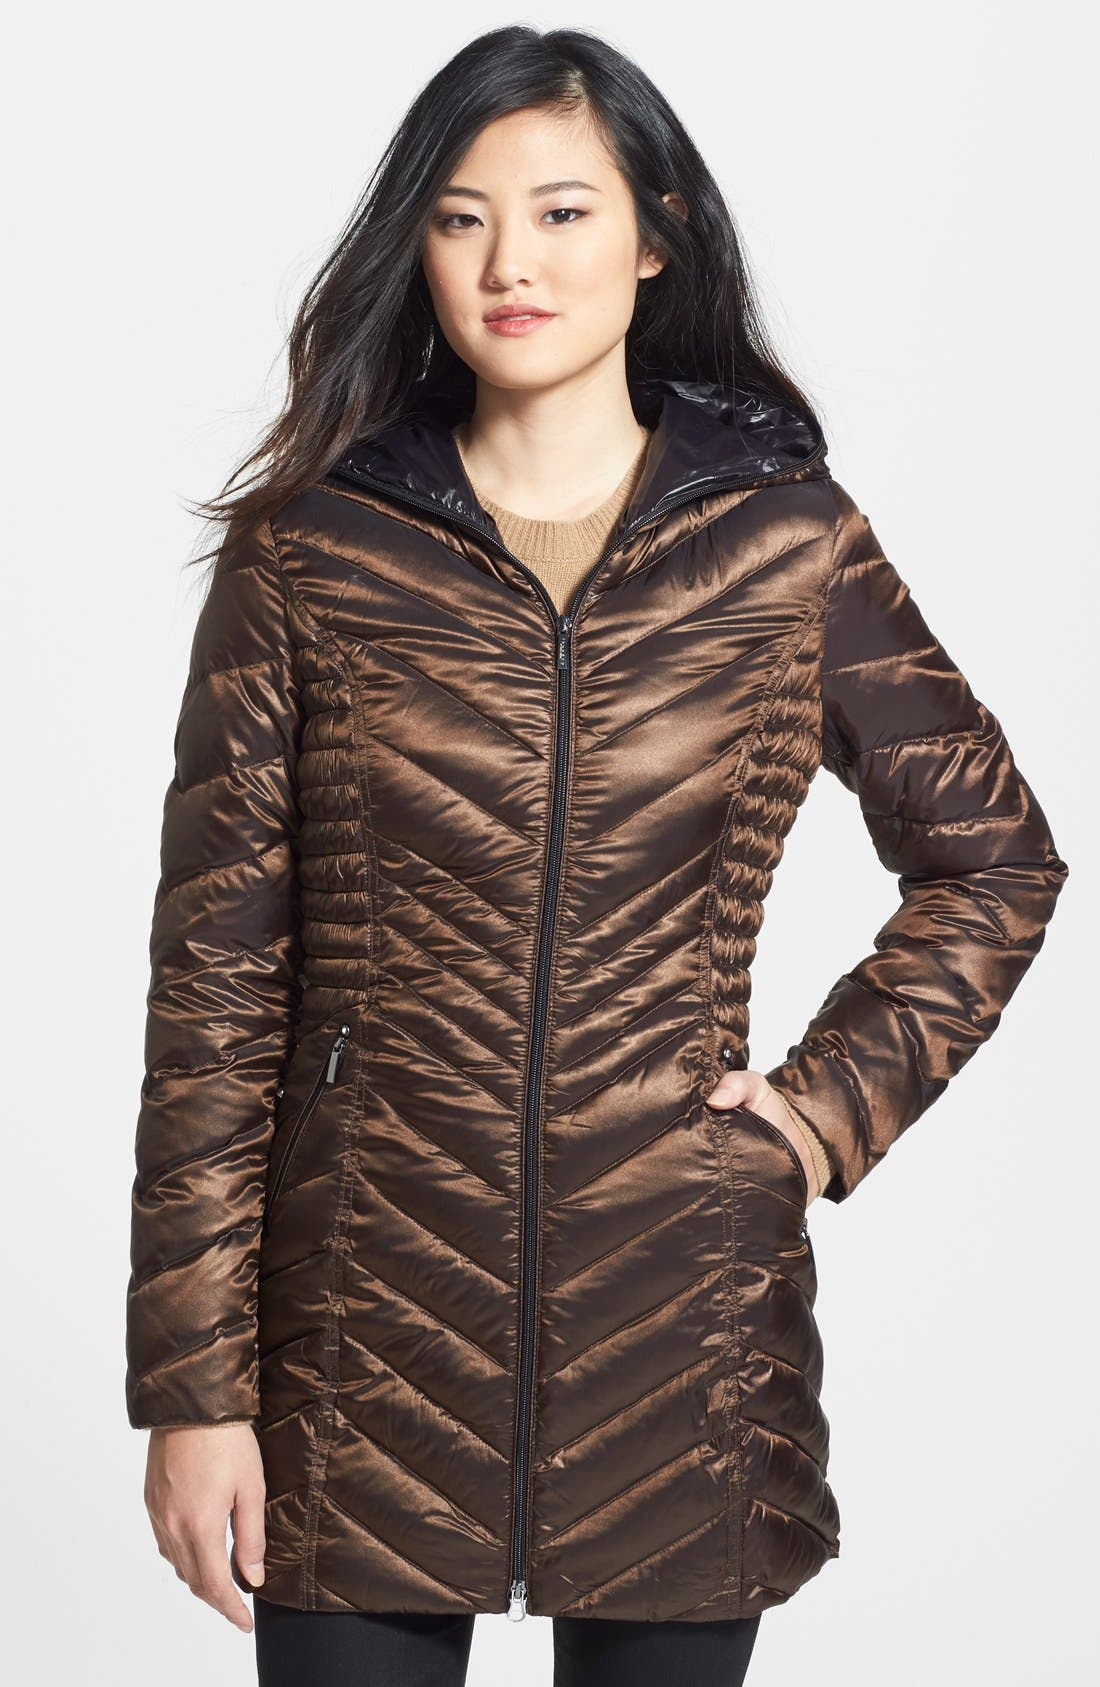 Hooded Packable Down Coat,                             Main thumbnail 1, color,                             201